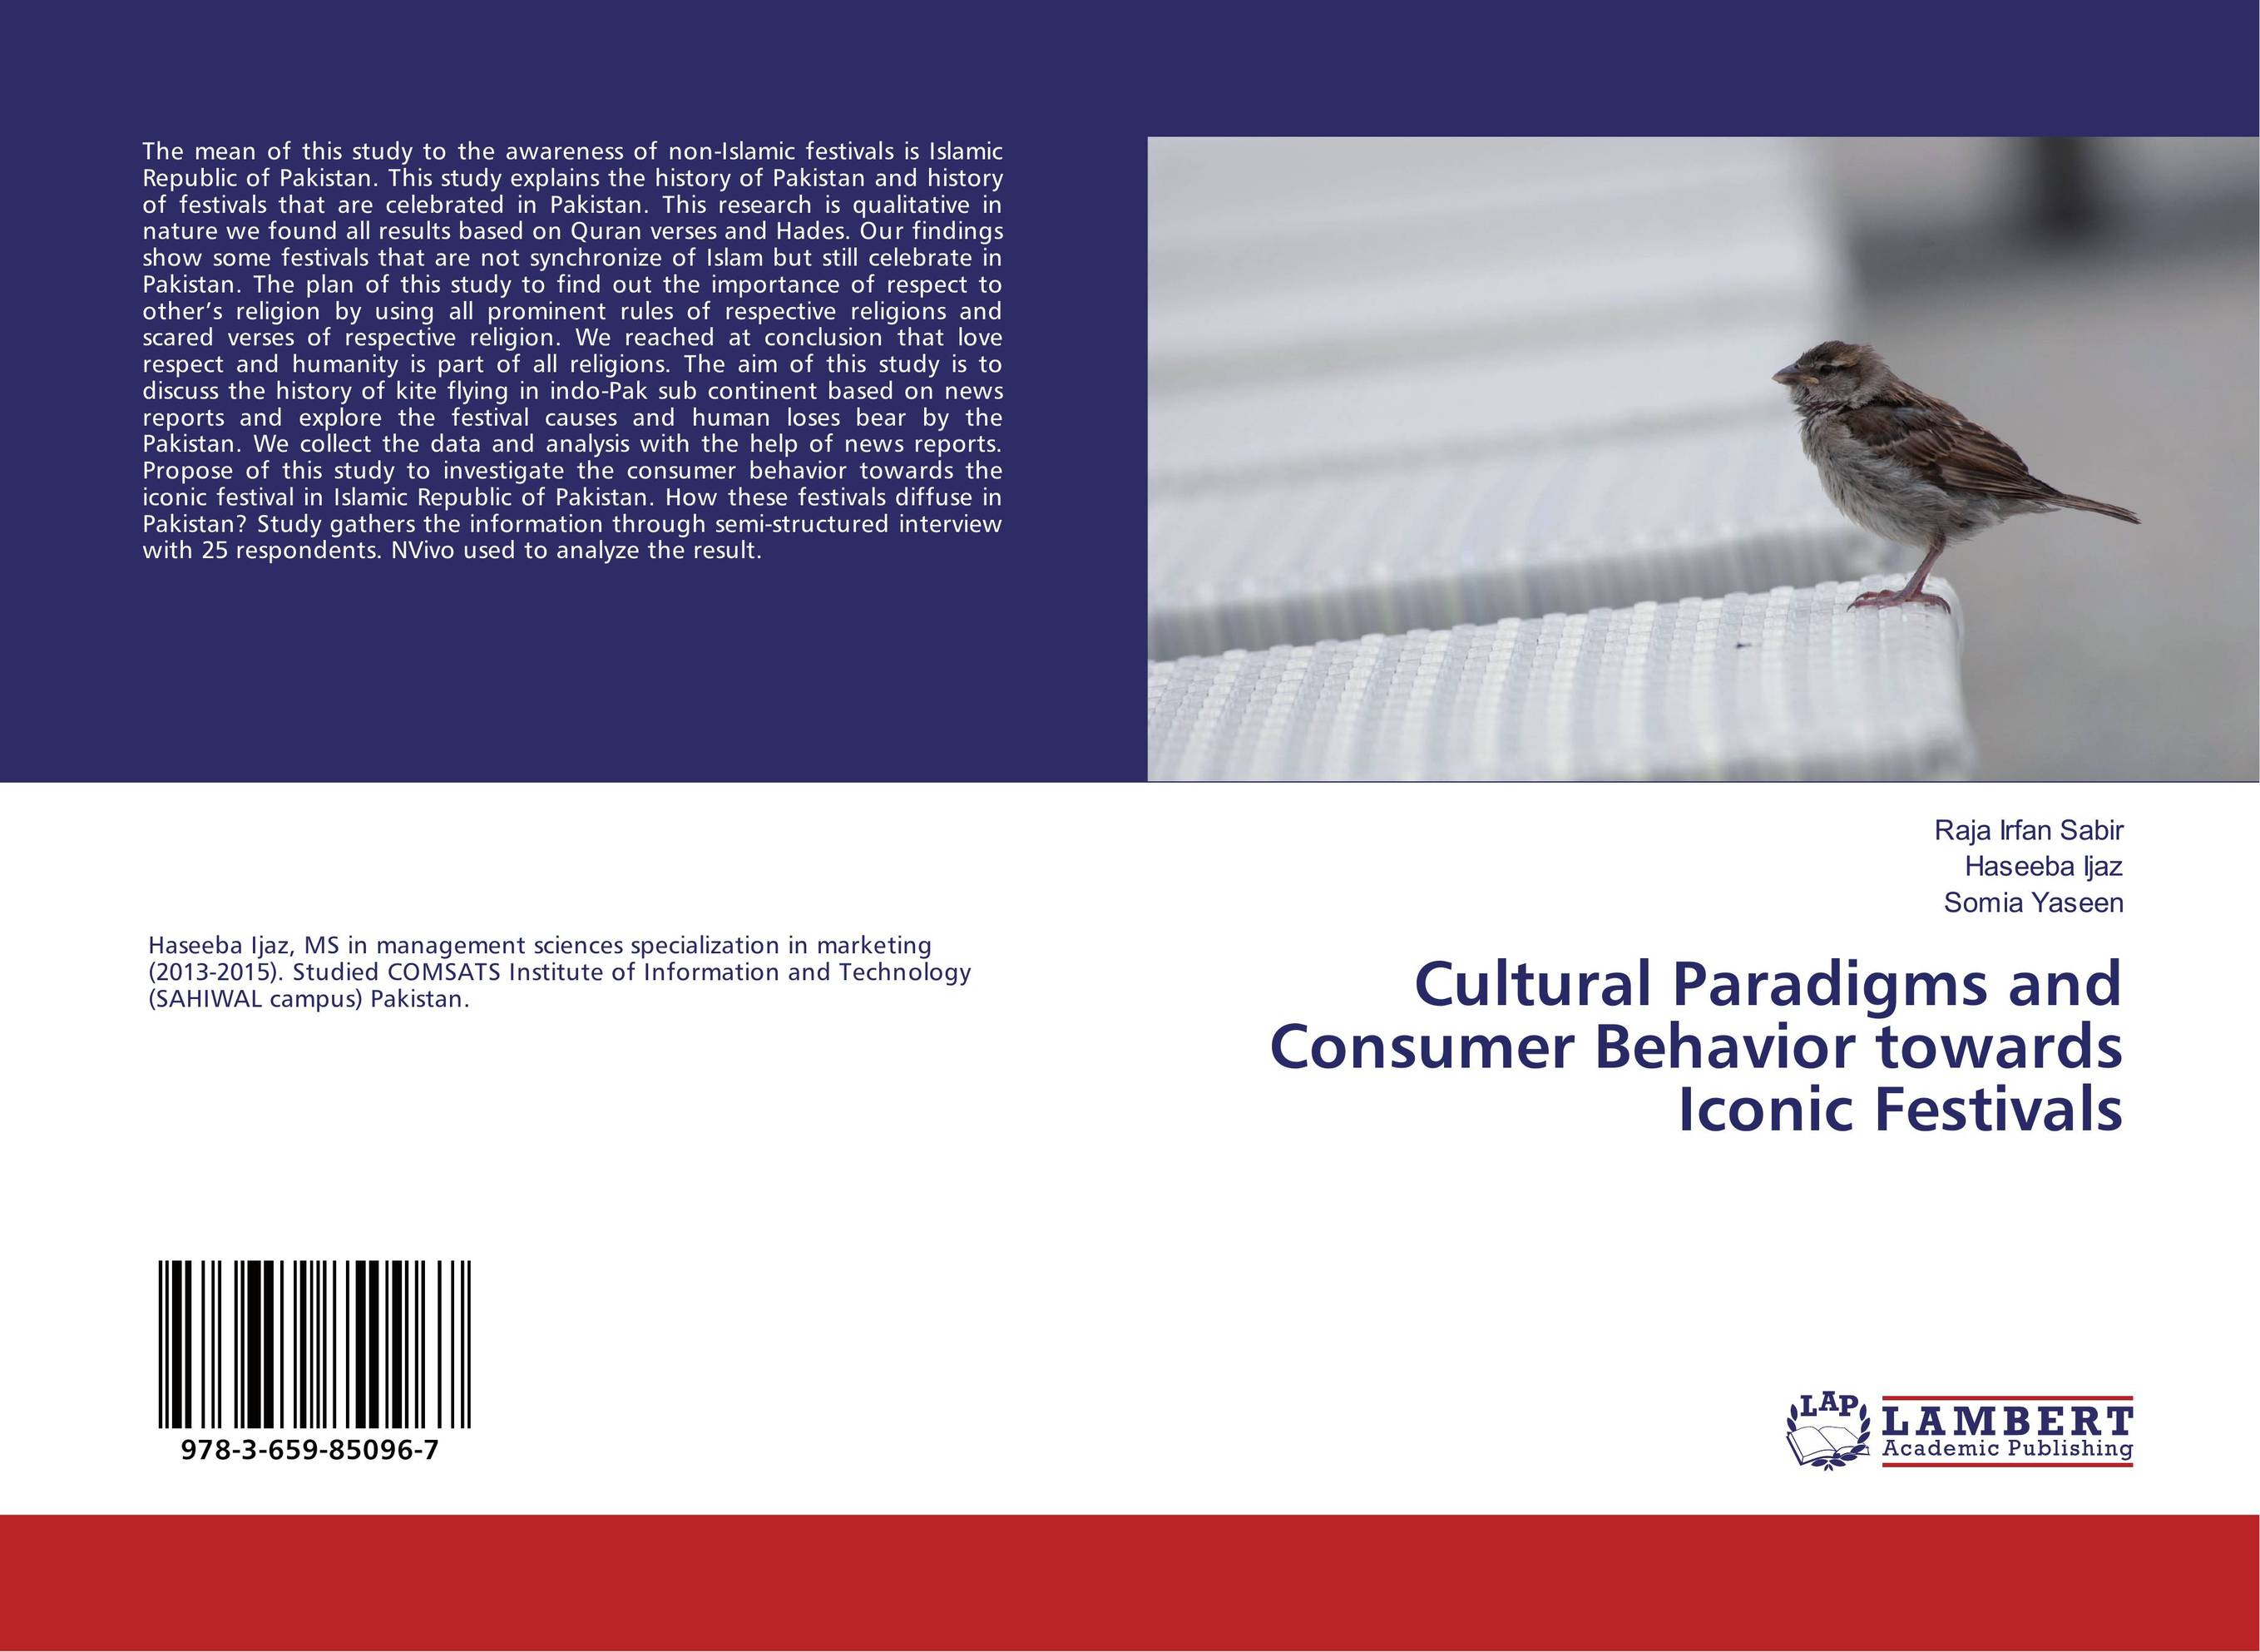 Cultural Paradigms and Consumer Behavior towards Iconic Festivals dividend paying behavior in pakistan